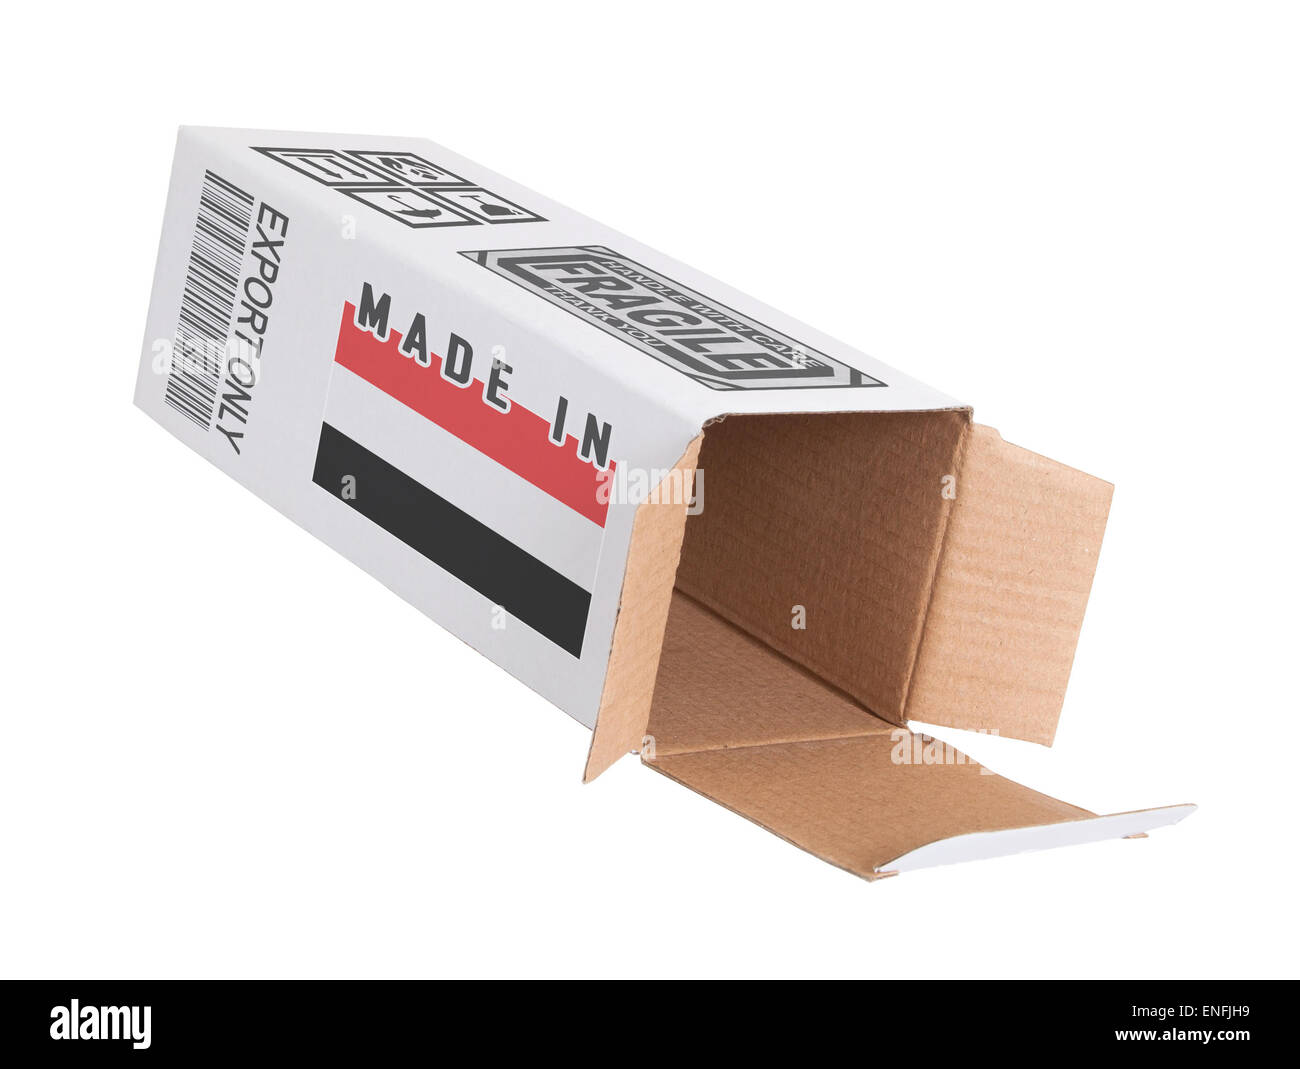 Concept of export, opened paper box - Product of Yemen - Stock Image